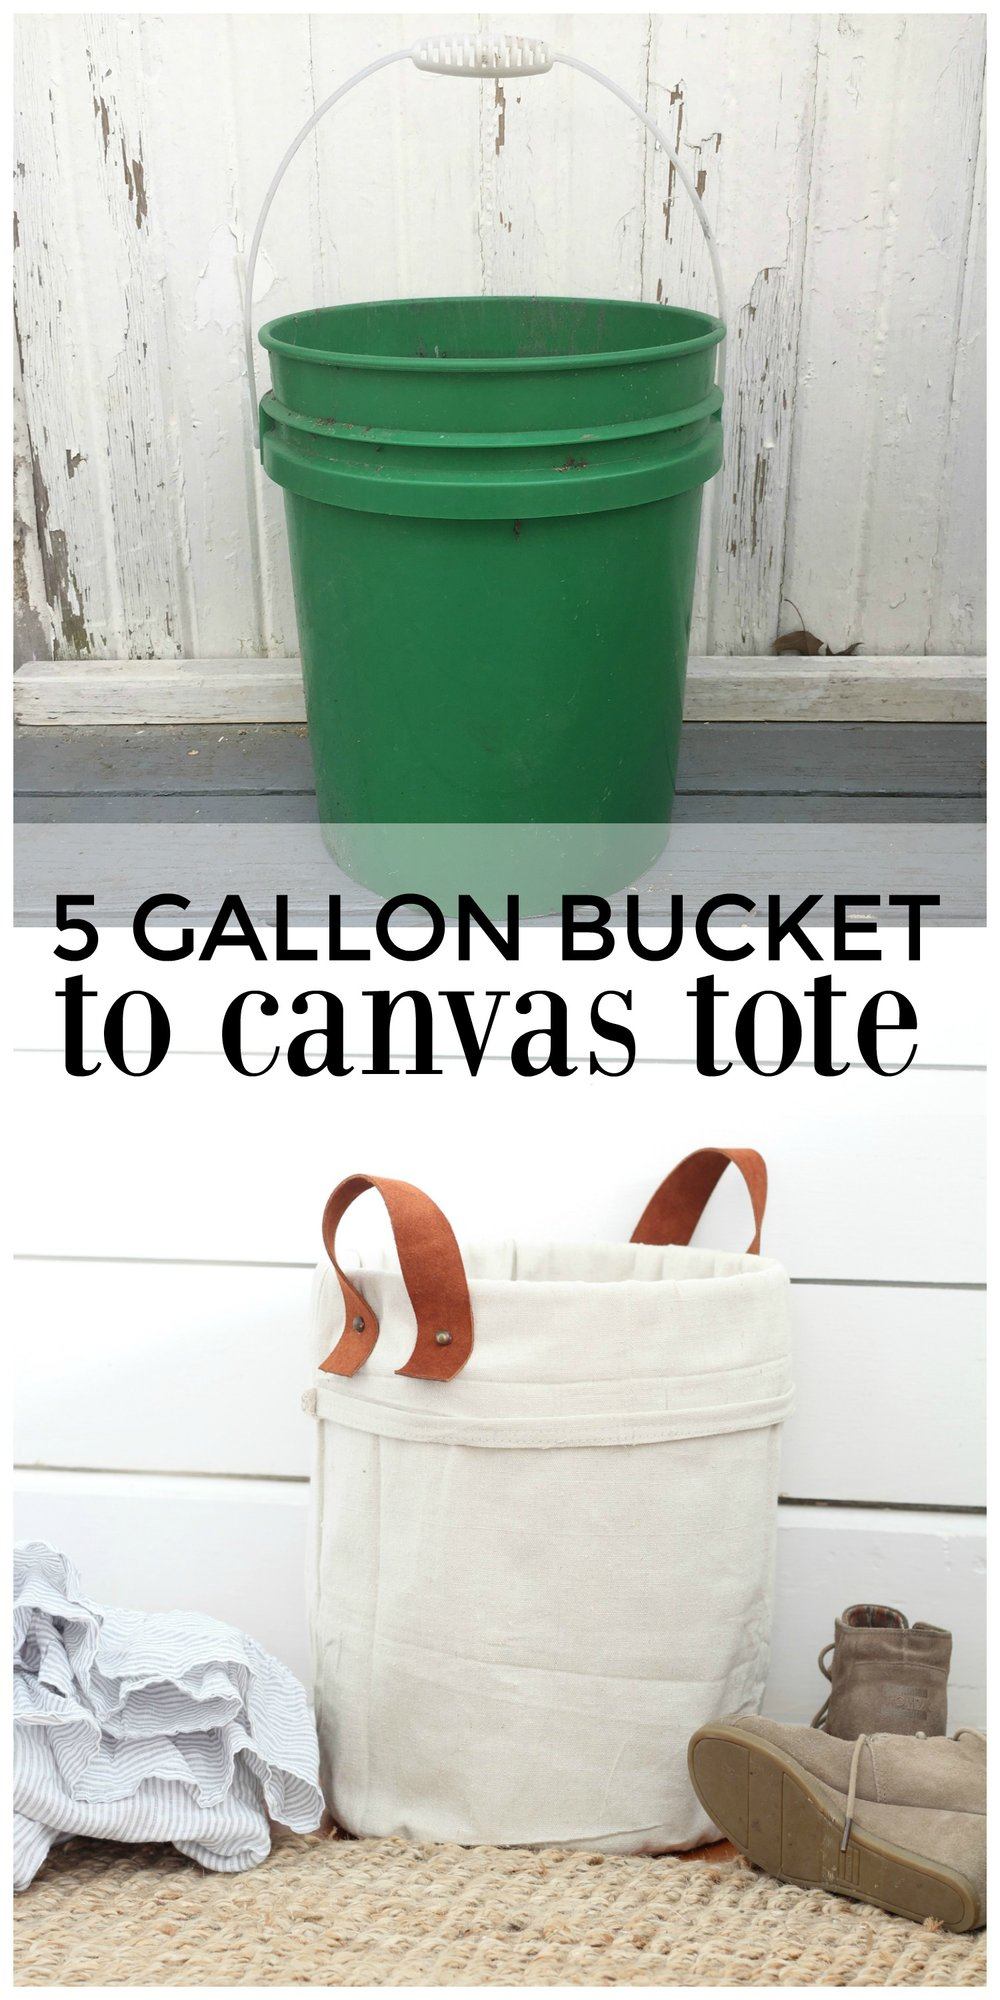 DIY 5 gallon bucket to canvas tote